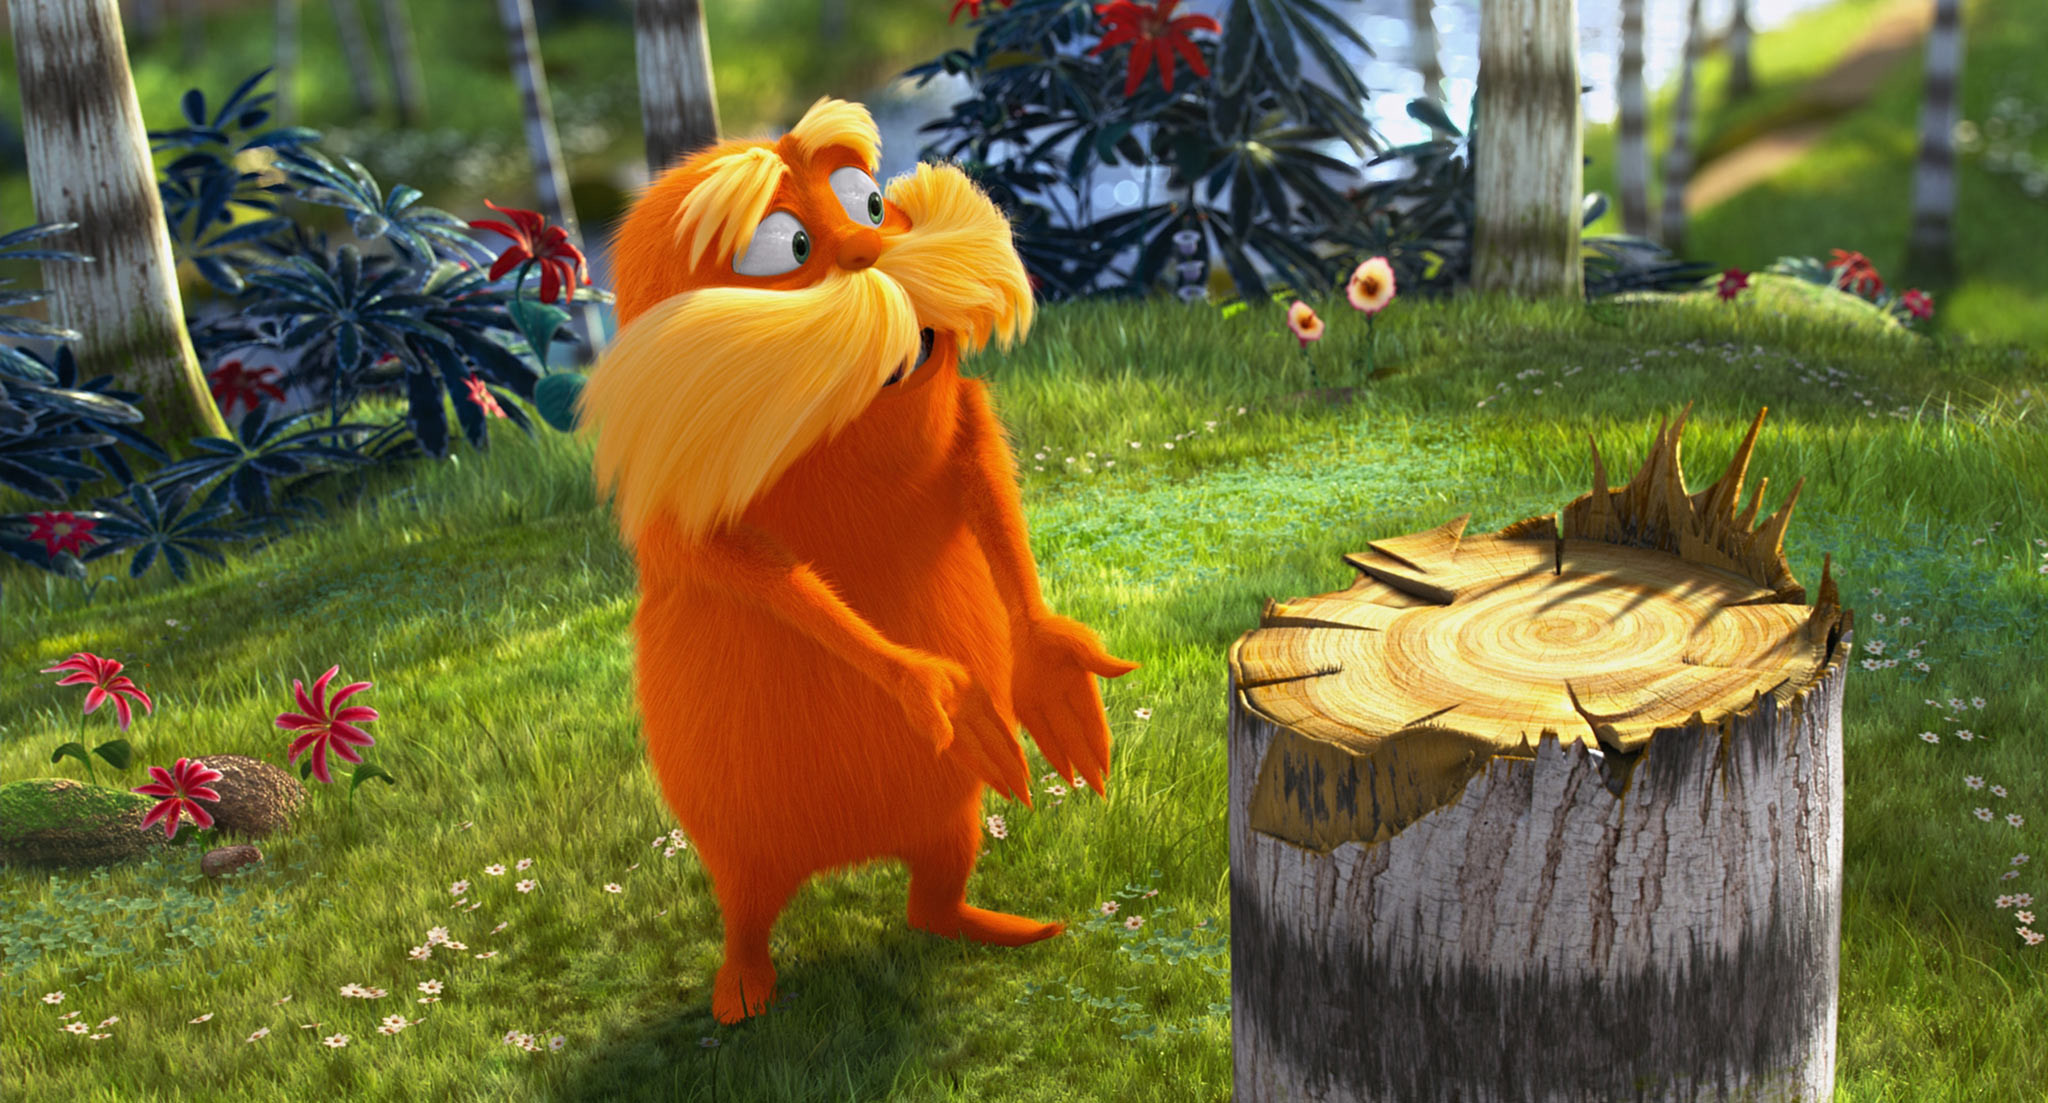 Res: 2048x1103, The Lorax in Dr. Seuss' The Lorax Movie wallpaper